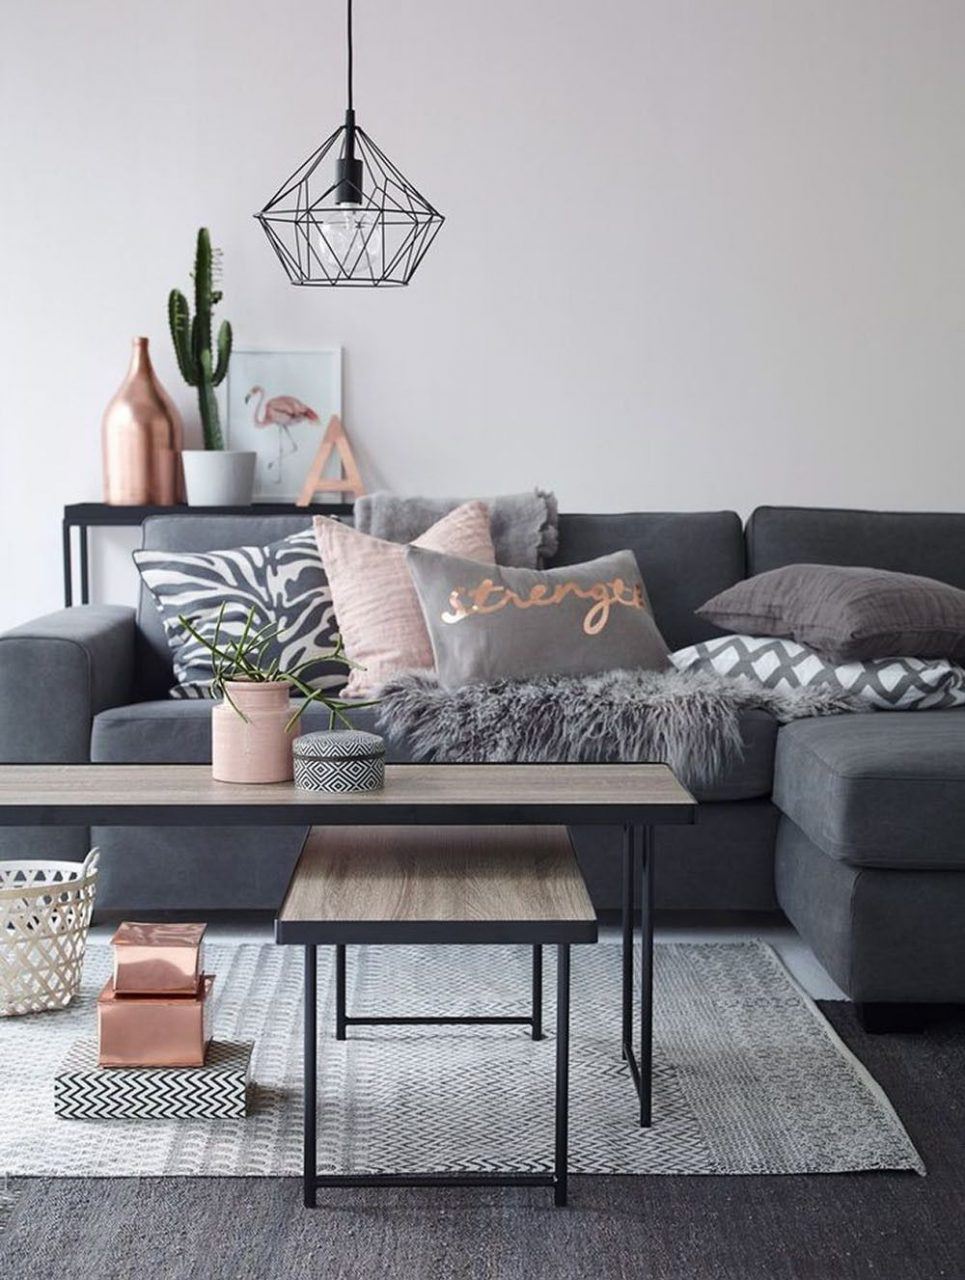 Decorating With Dusty Pink Cool Decoraciones De Casa Decoracin